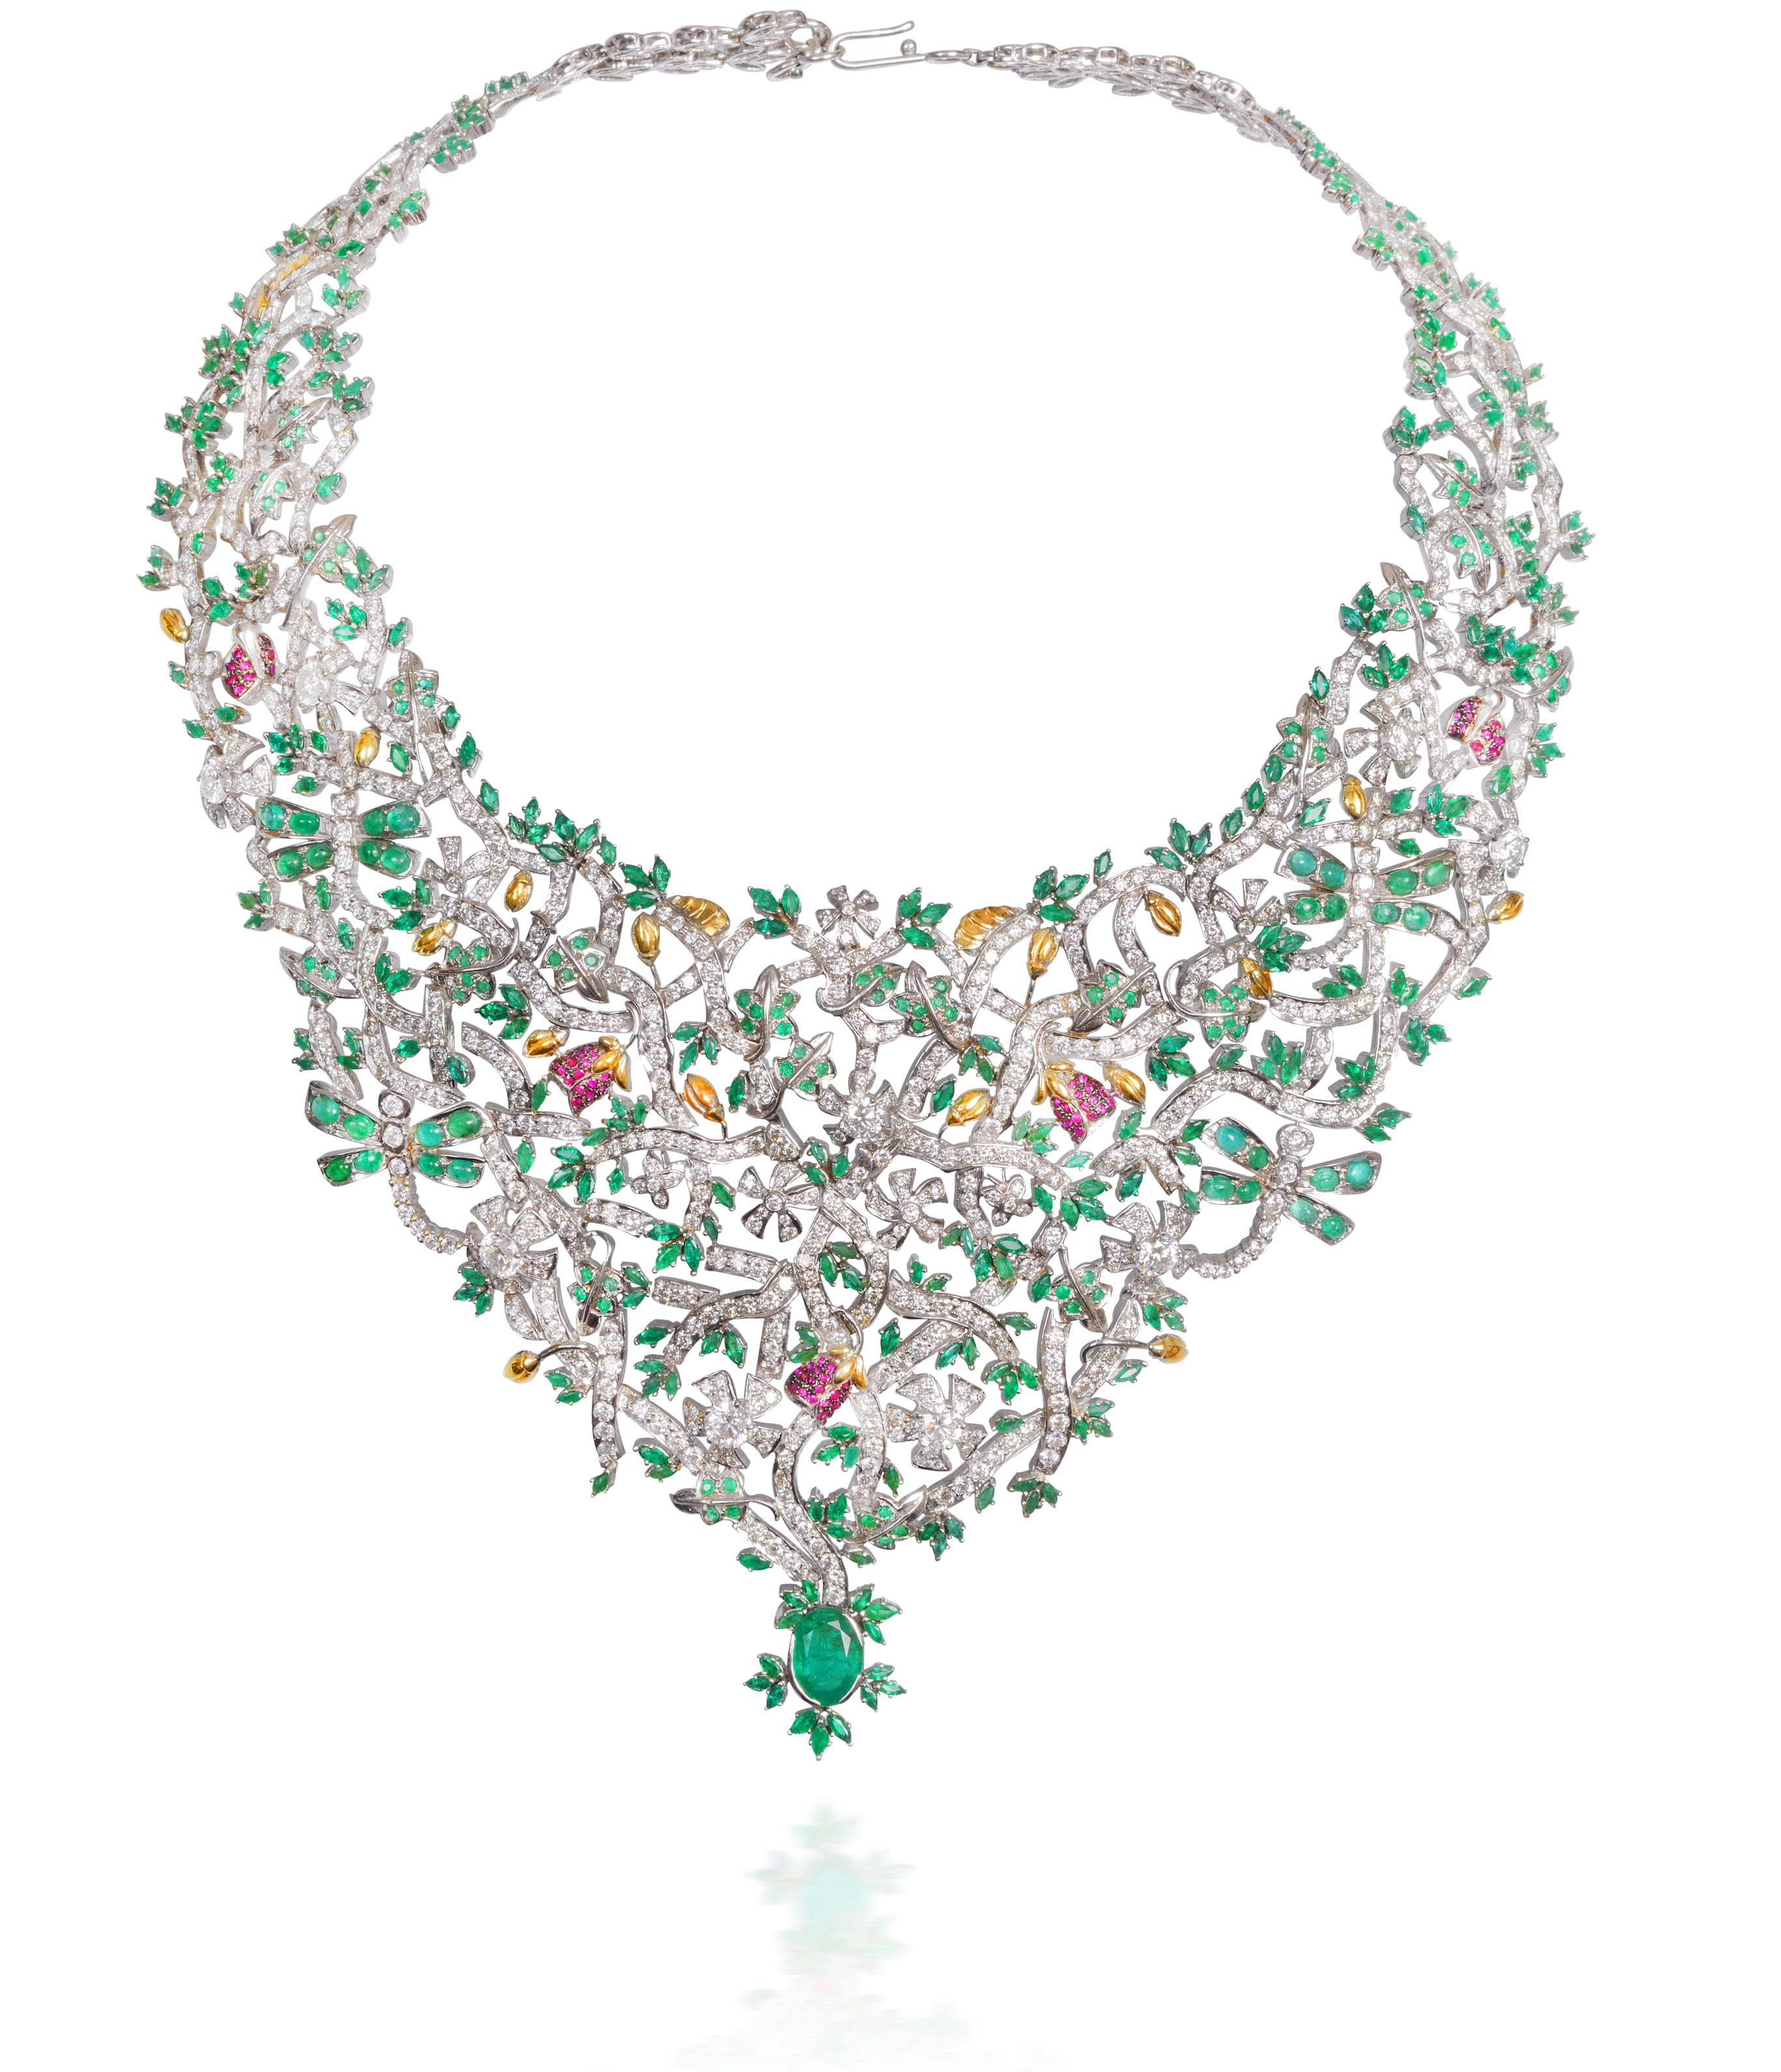 Necklace picture